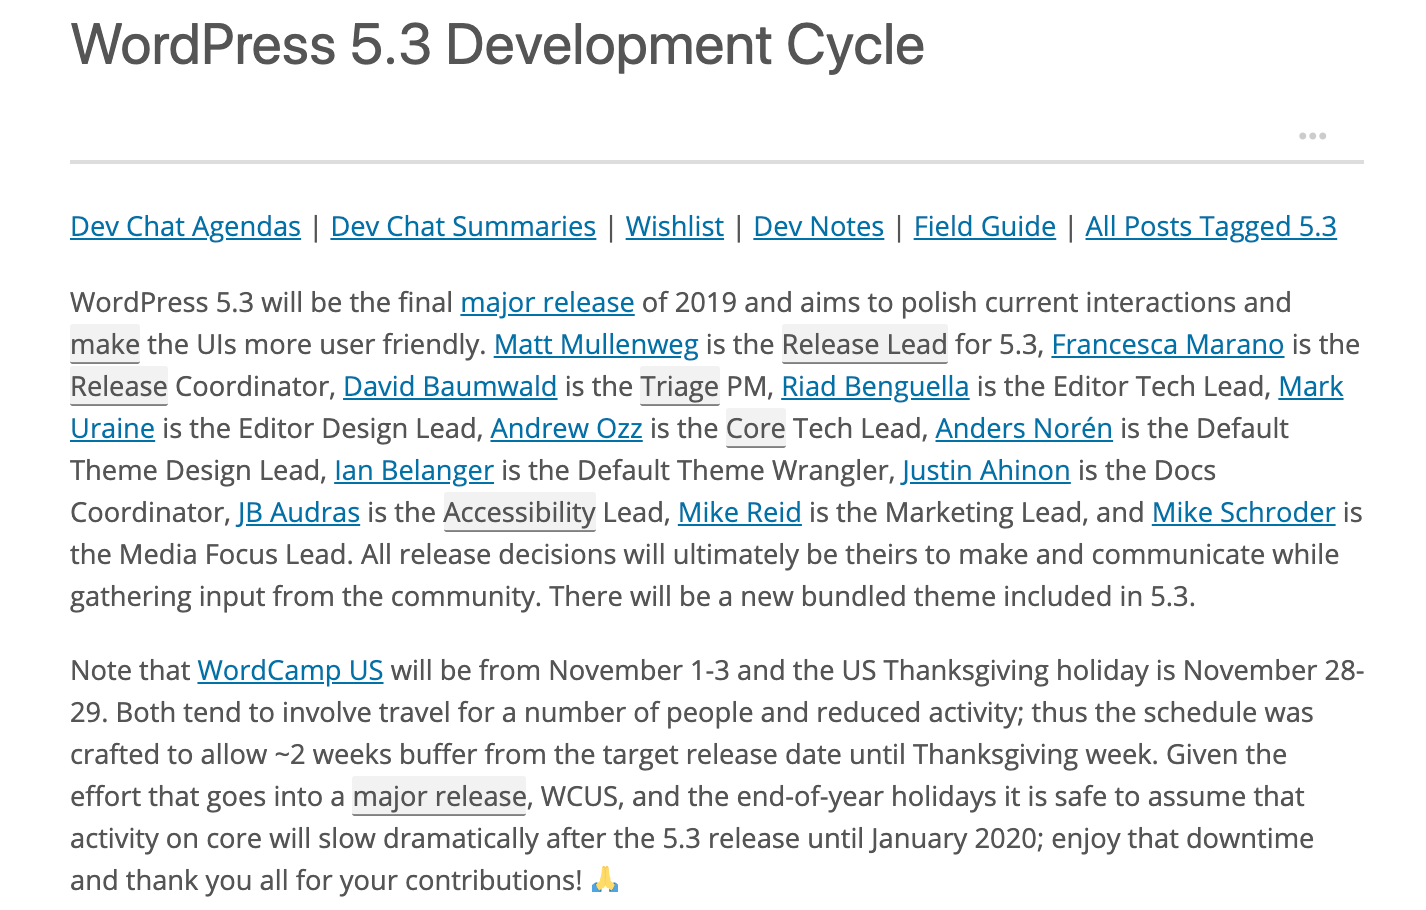 Screenshot of the WordPress 5.3 Development Cycle Page with the names of the squad